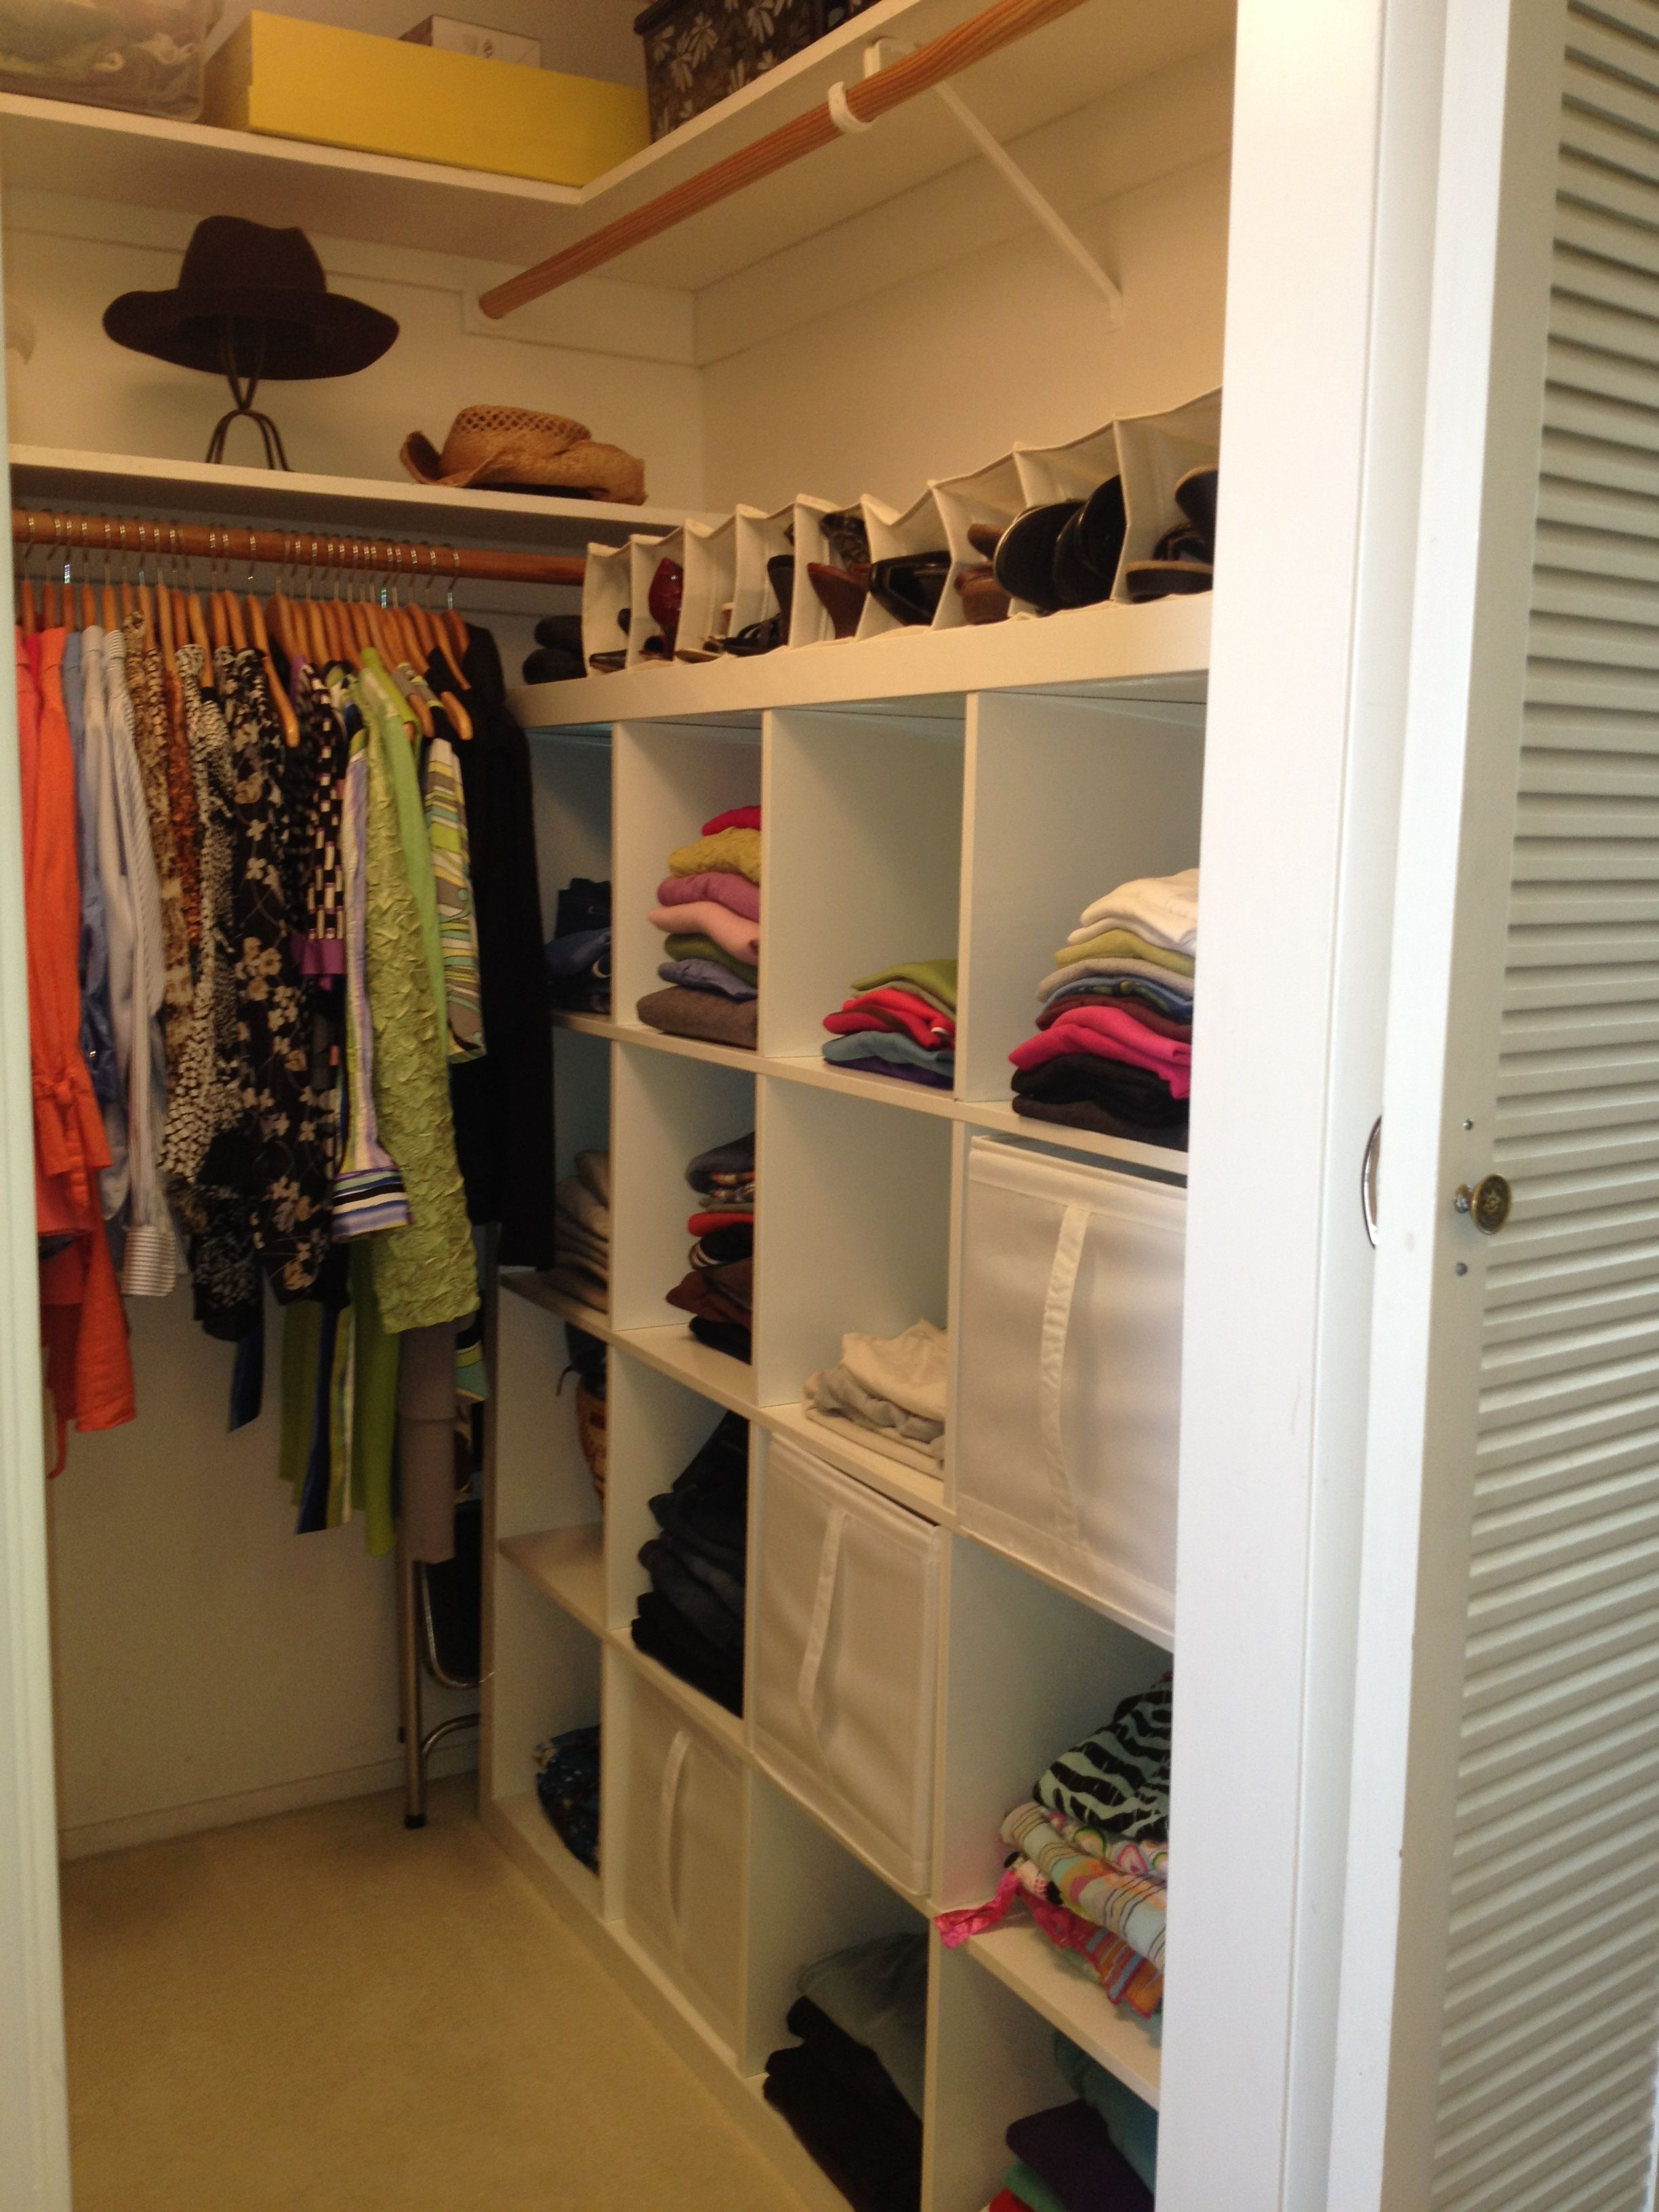 12 Small Walk In Closet Ideas And Organizer Designs Small